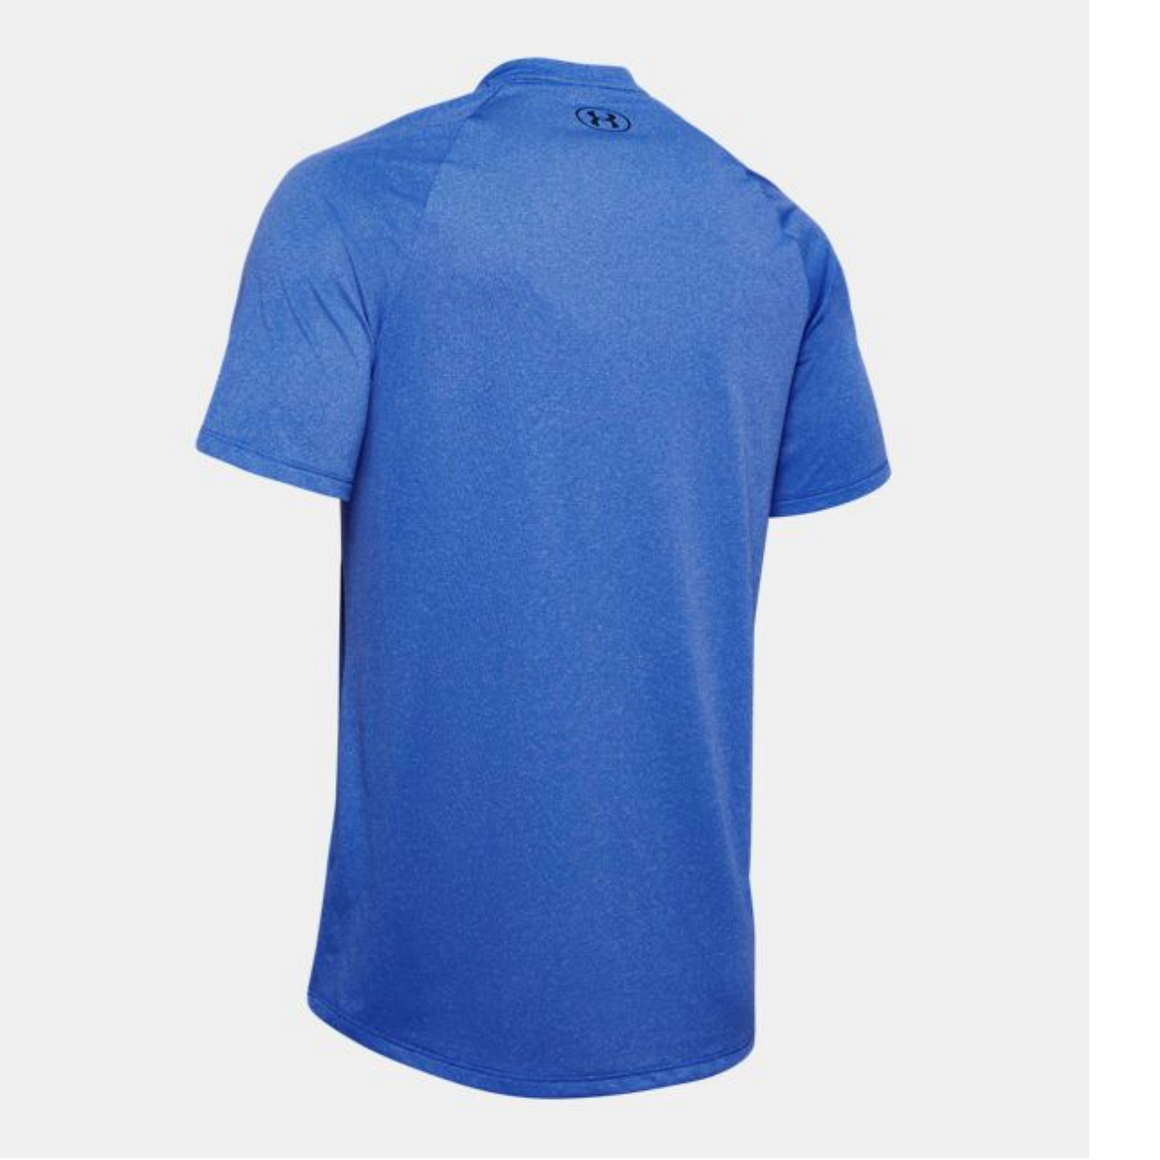 Men's Under Armour Novelty Short Sleeve Tech Tee 2.0